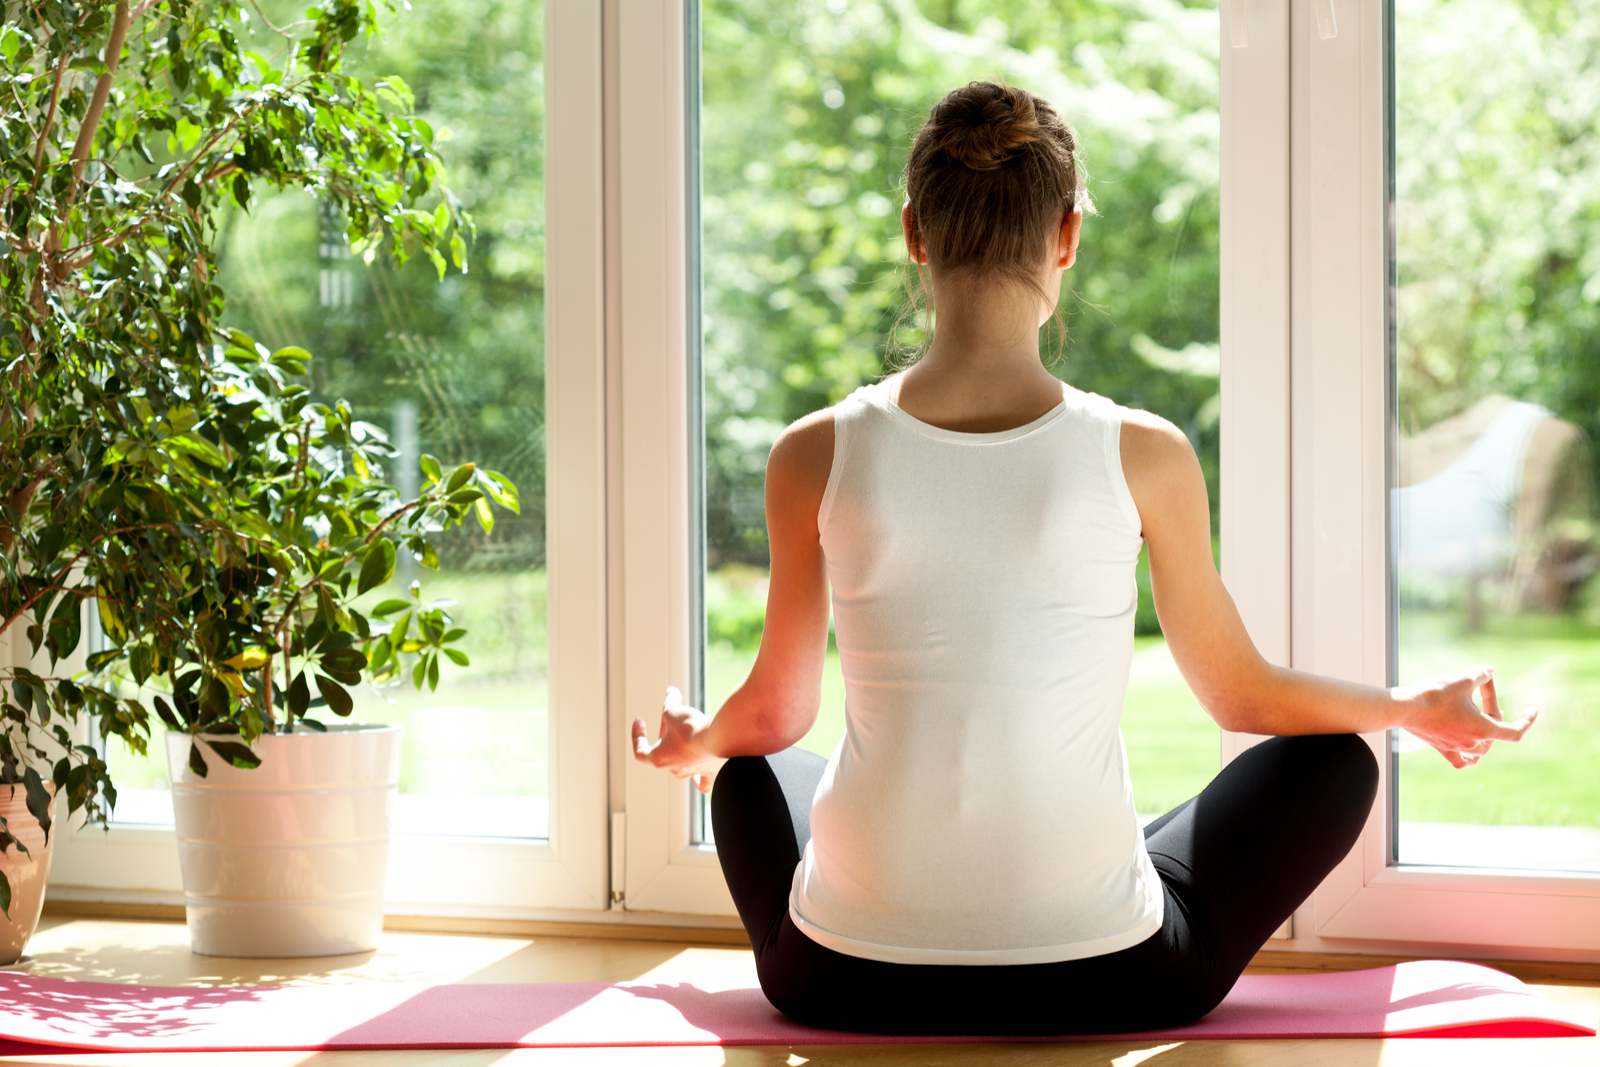 Comfortable Clothing | 10 Easy Yoga Tips To Get The Most Out Of Your Practice